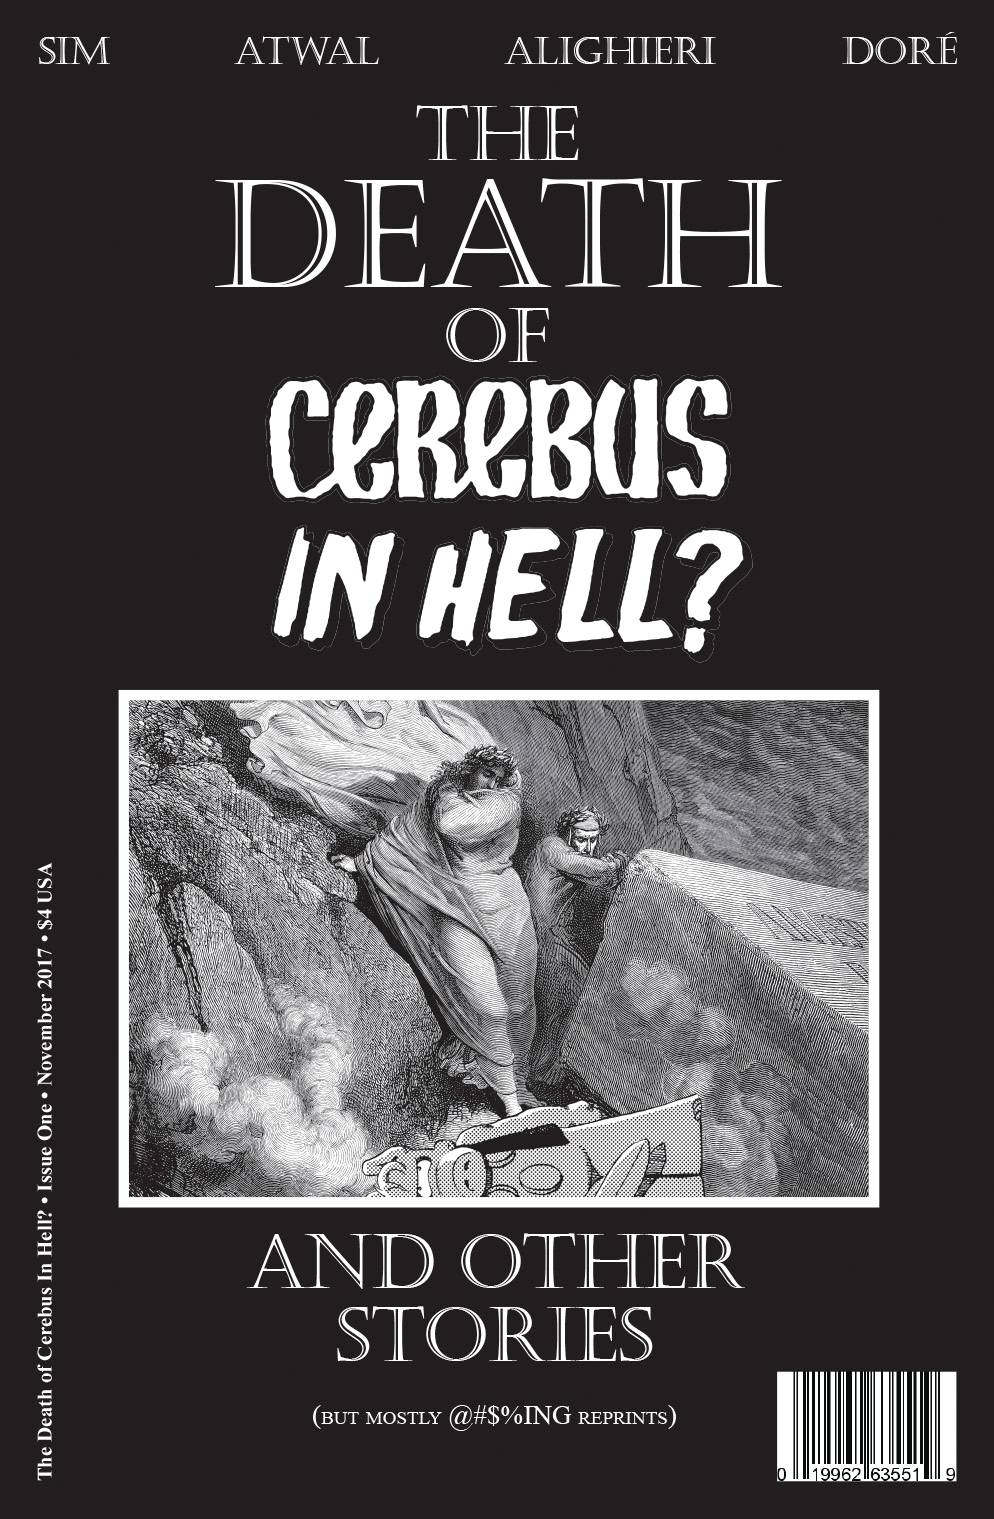 DEATH OF CEREBUS IN HELL 1 of 1.jpg